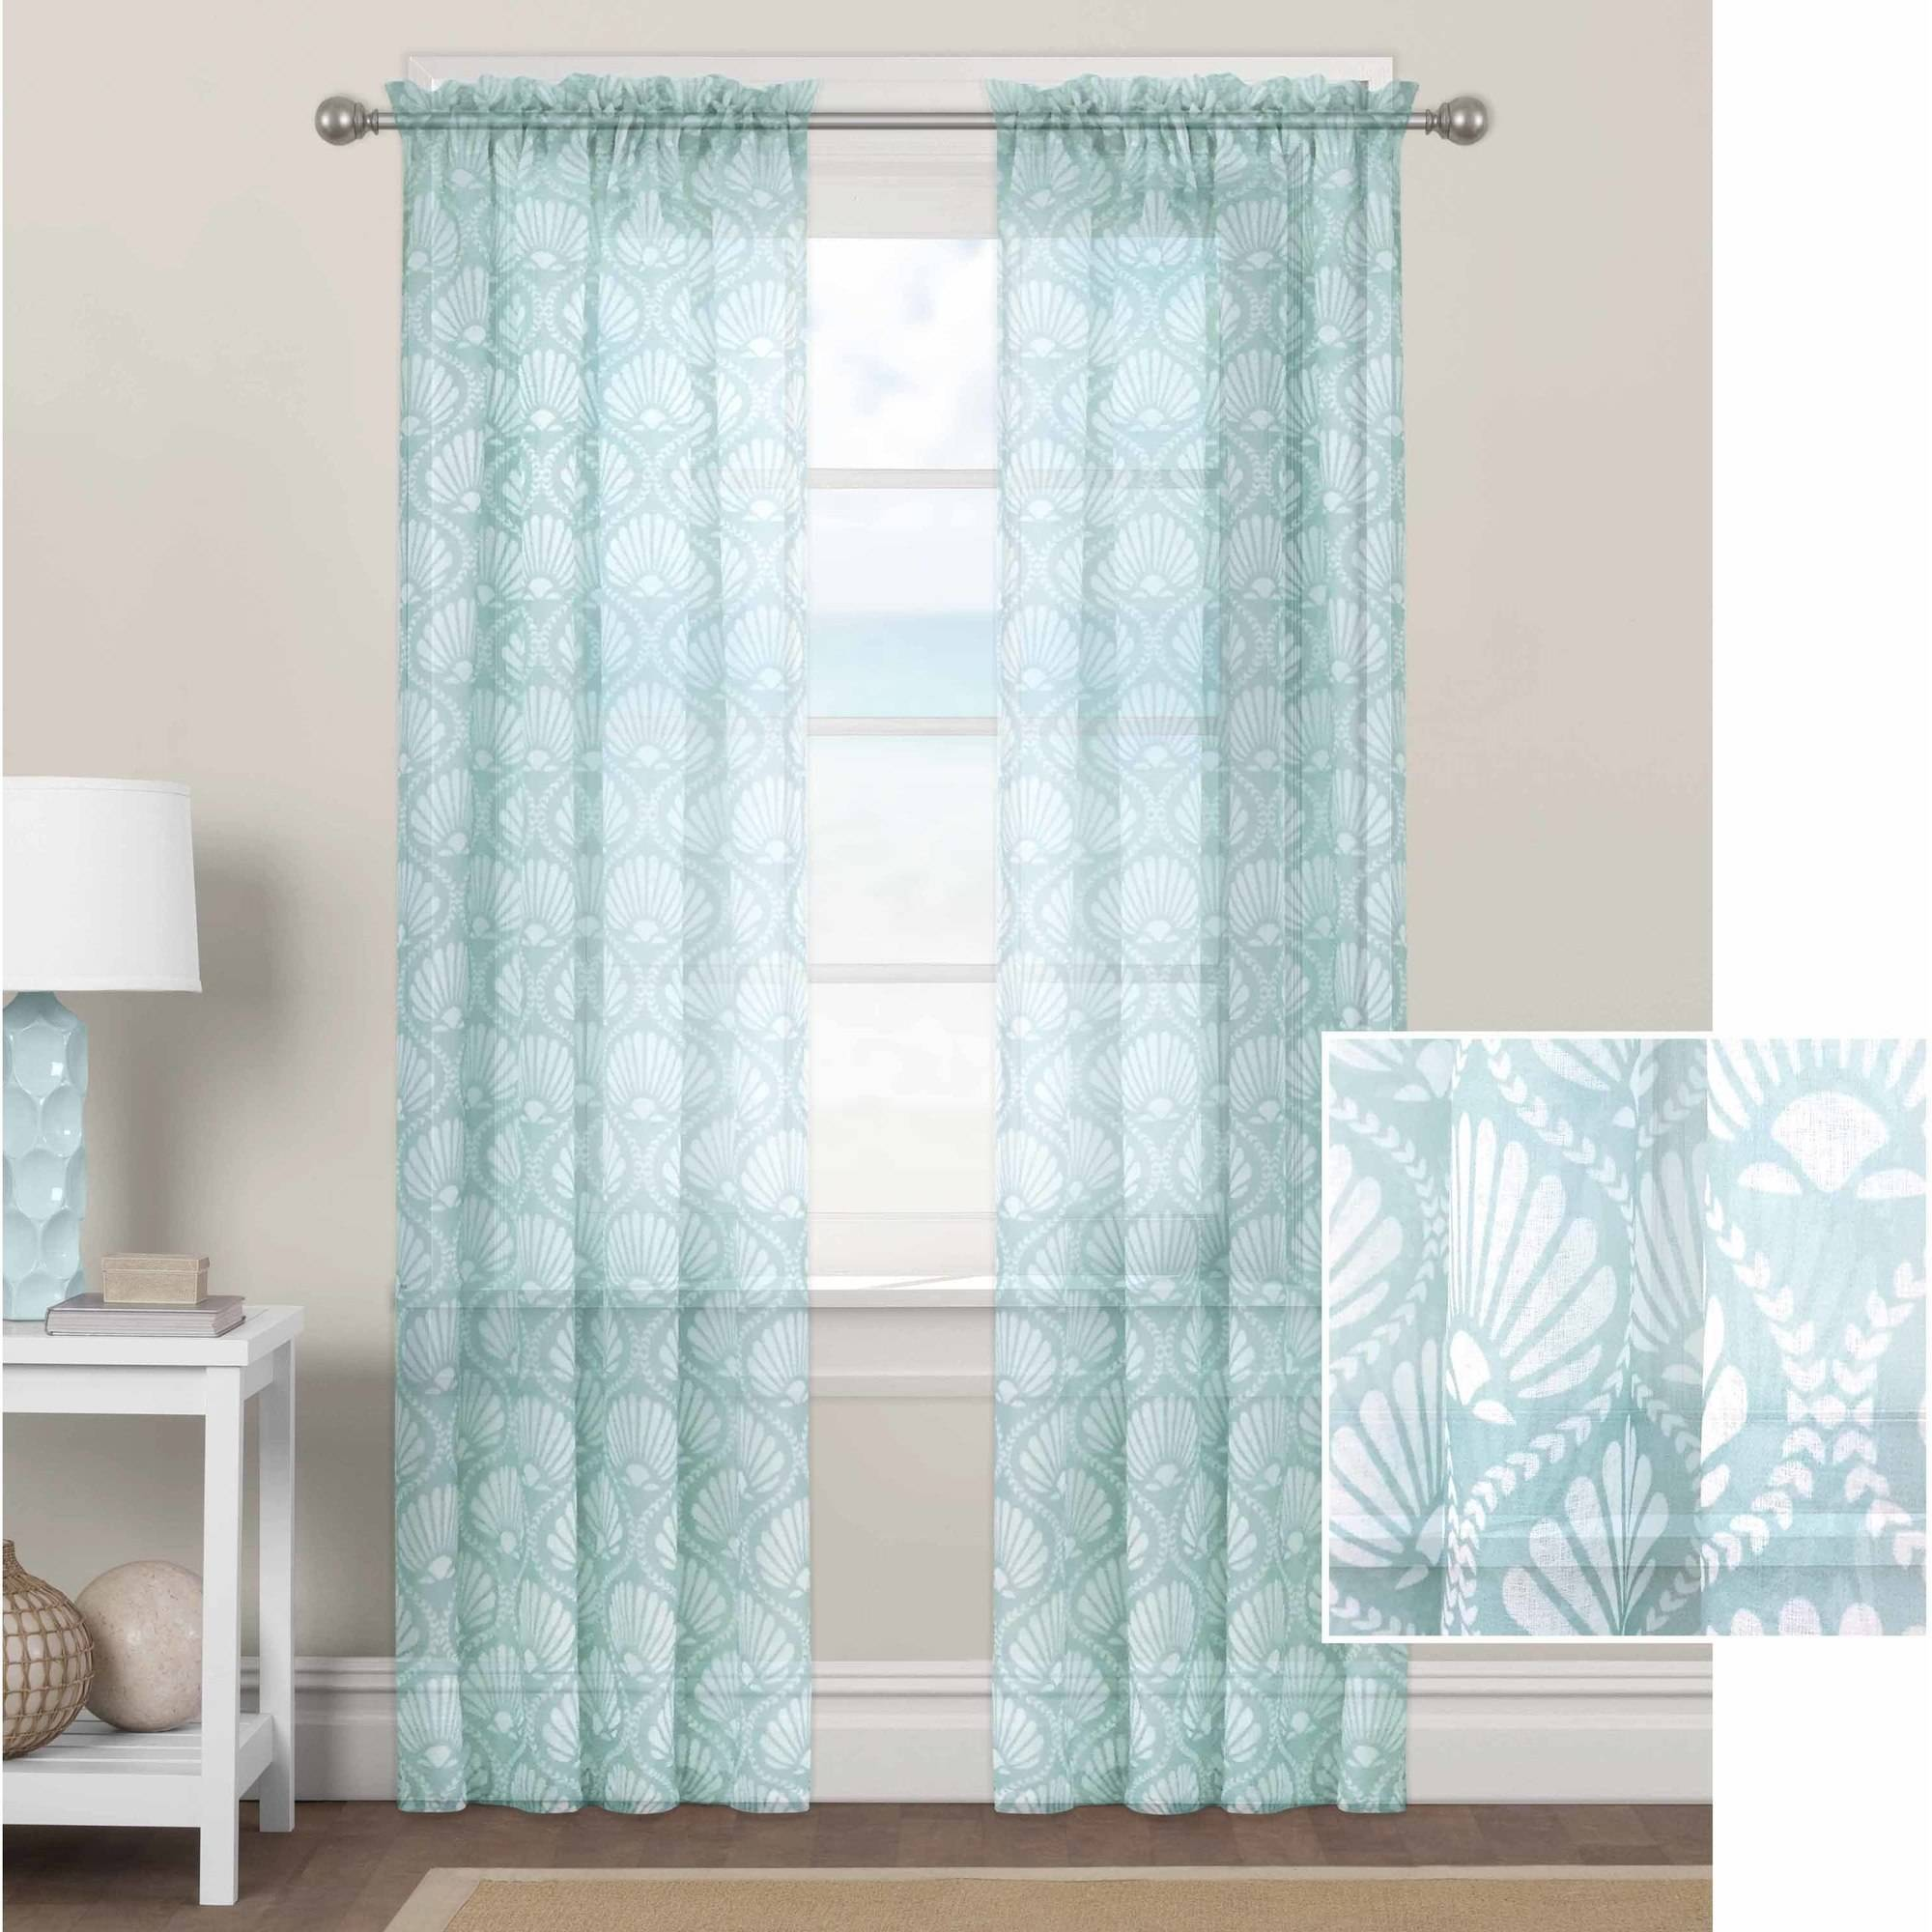 Better Homes And Gardens Aqua Venus Shells Sheer Curtain Panel   Walmart.com